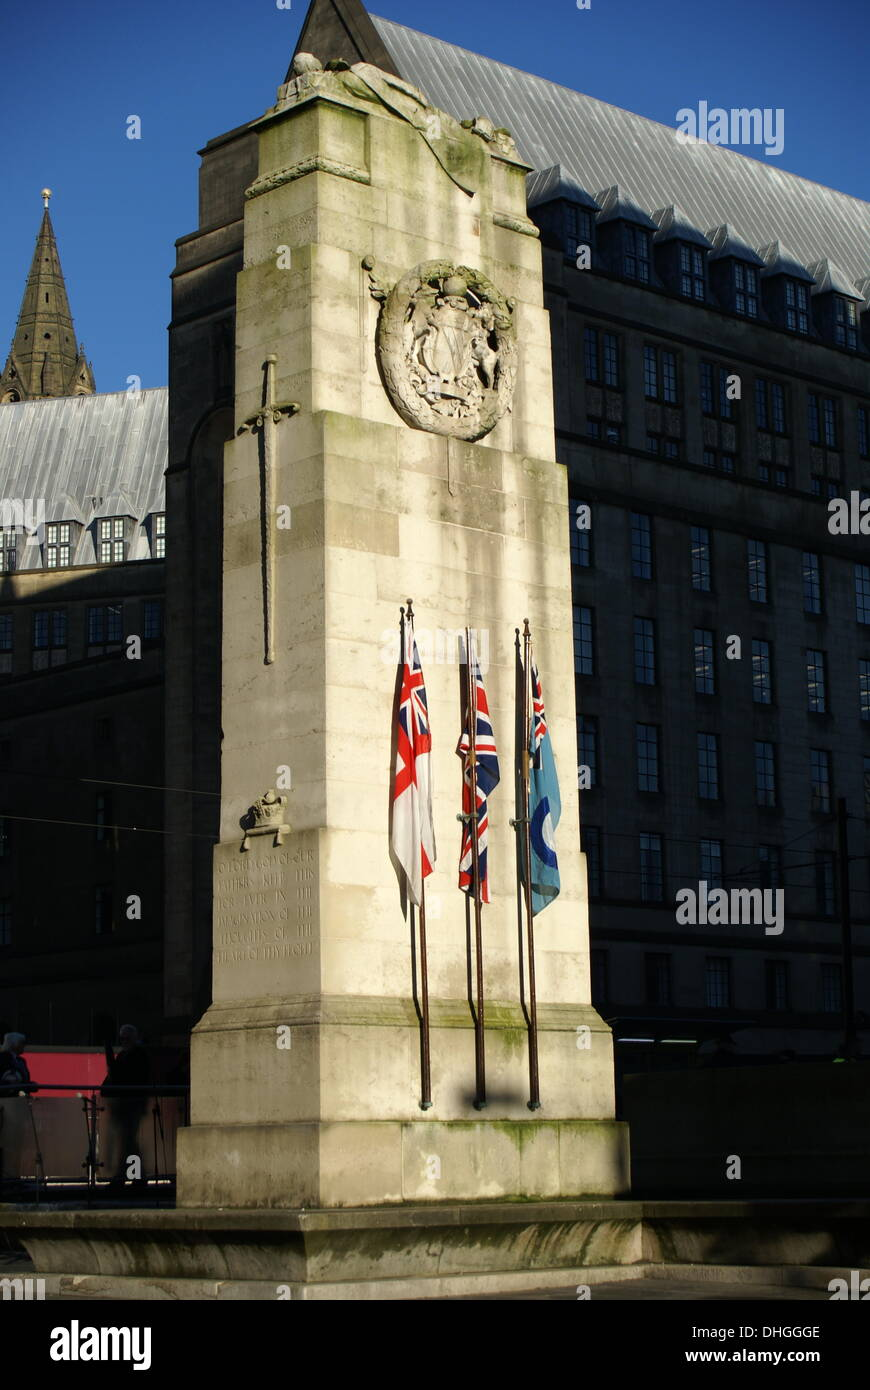 The Cenotaph in Manchester, UK on Remembrance Sunday, November 10th 2013 Stock Photo